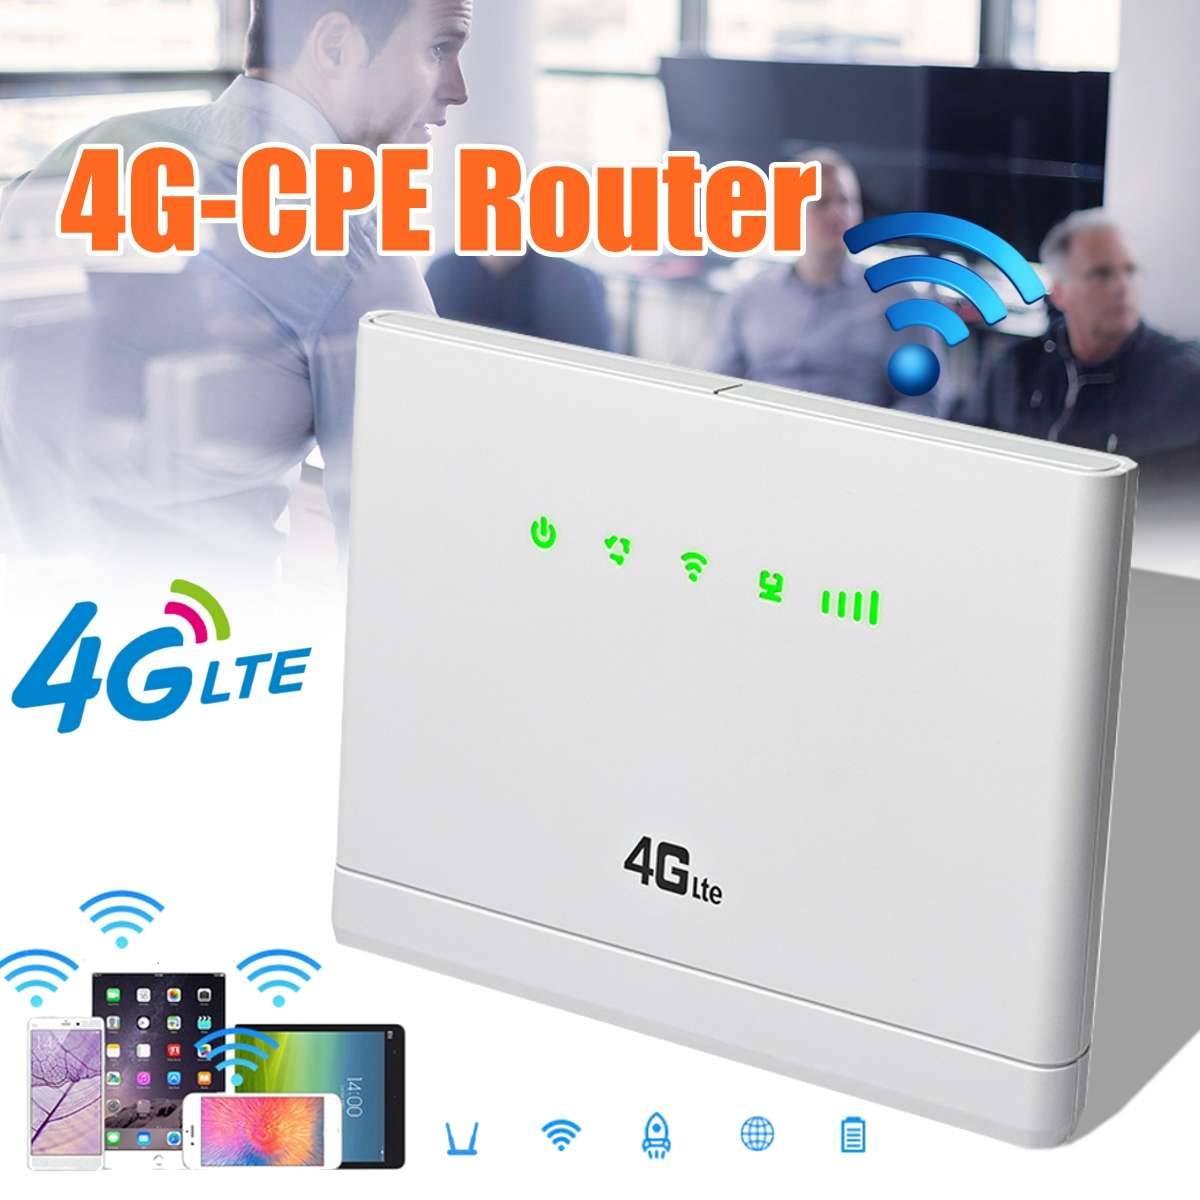 High Speed Dual Band Wireless Wifi Router With 3G 4G LTE Modem SIM Card Slot For Travel Business High Gain Antenna